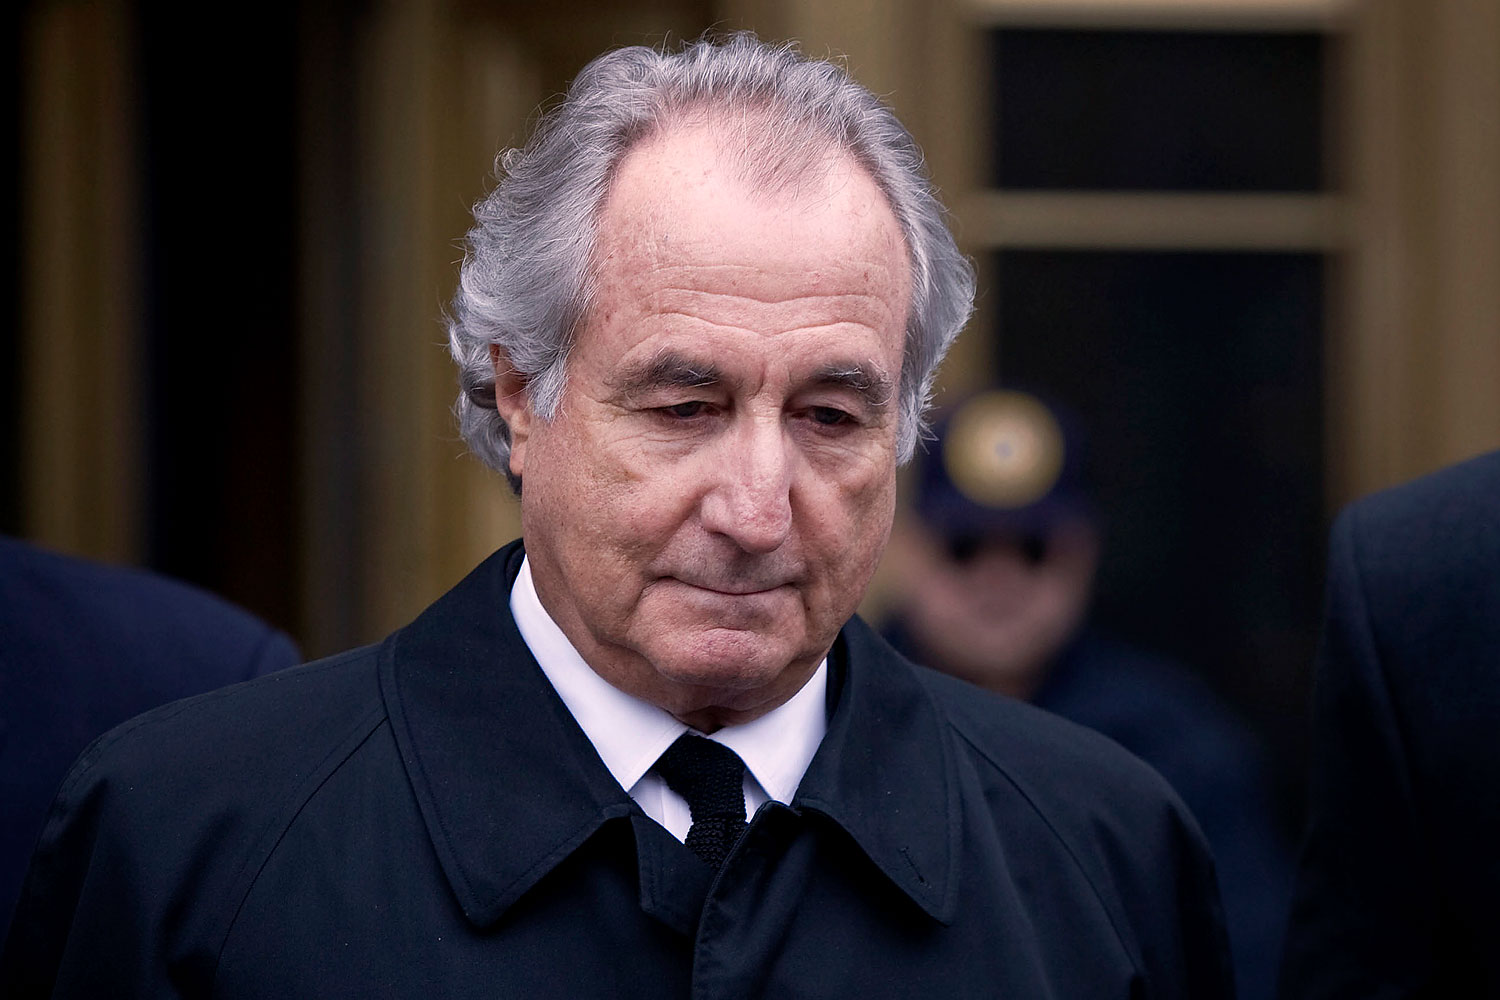 Bernard Madoff is led out from Federal court Mar. 10, 2009 in New York.